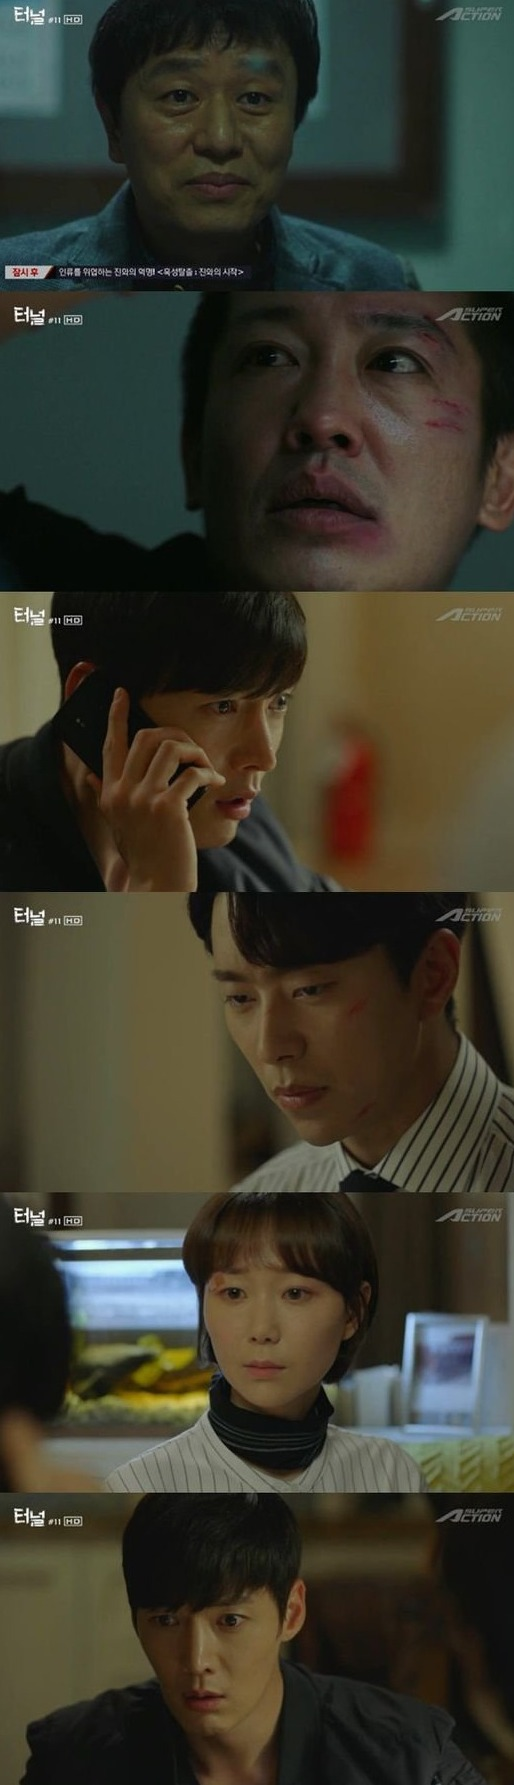 [Spoiler] Added episodes 11 and 12 captures for the Korean drama 'Tunnel – Drama'